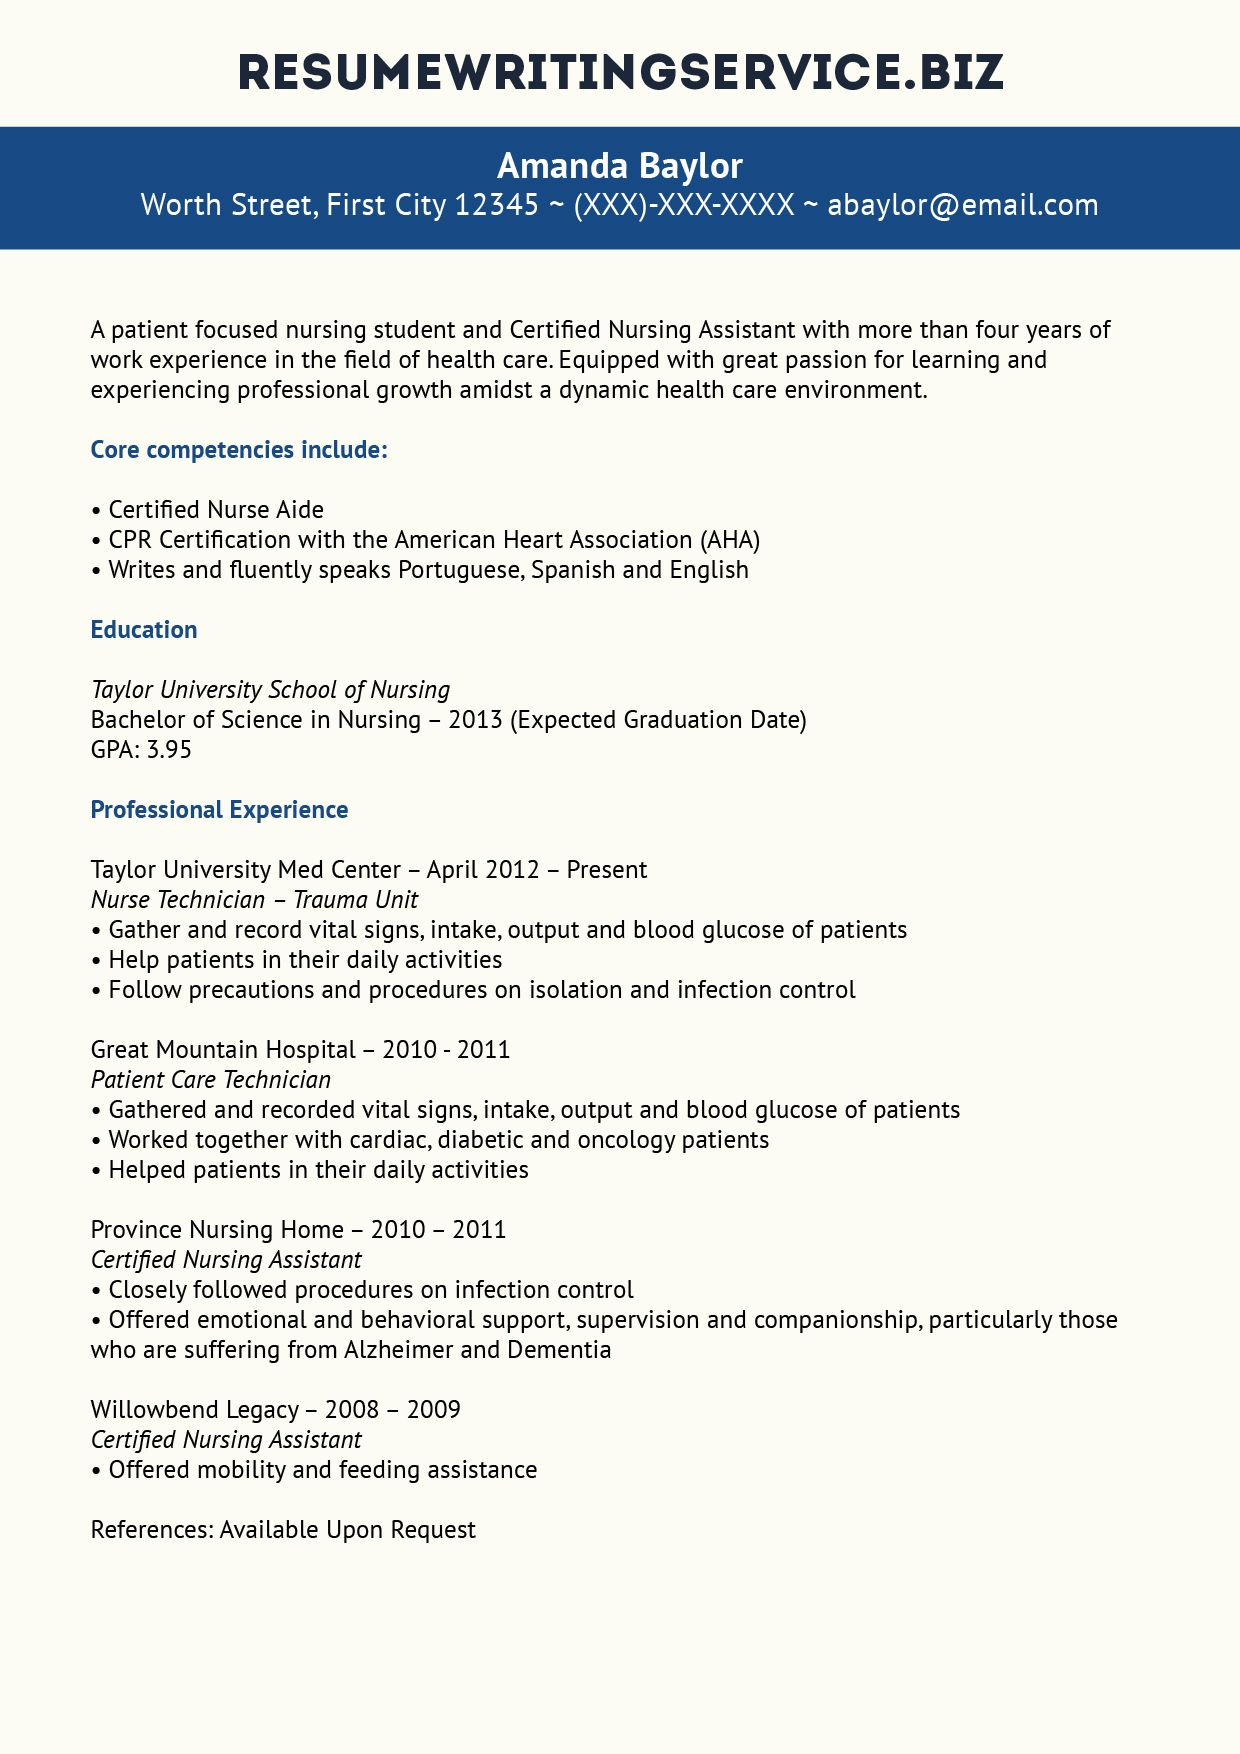 Sample Resume For Nursing Assistant Nursing Student Resume Sample  Studentcareer  Pinterest  Student .